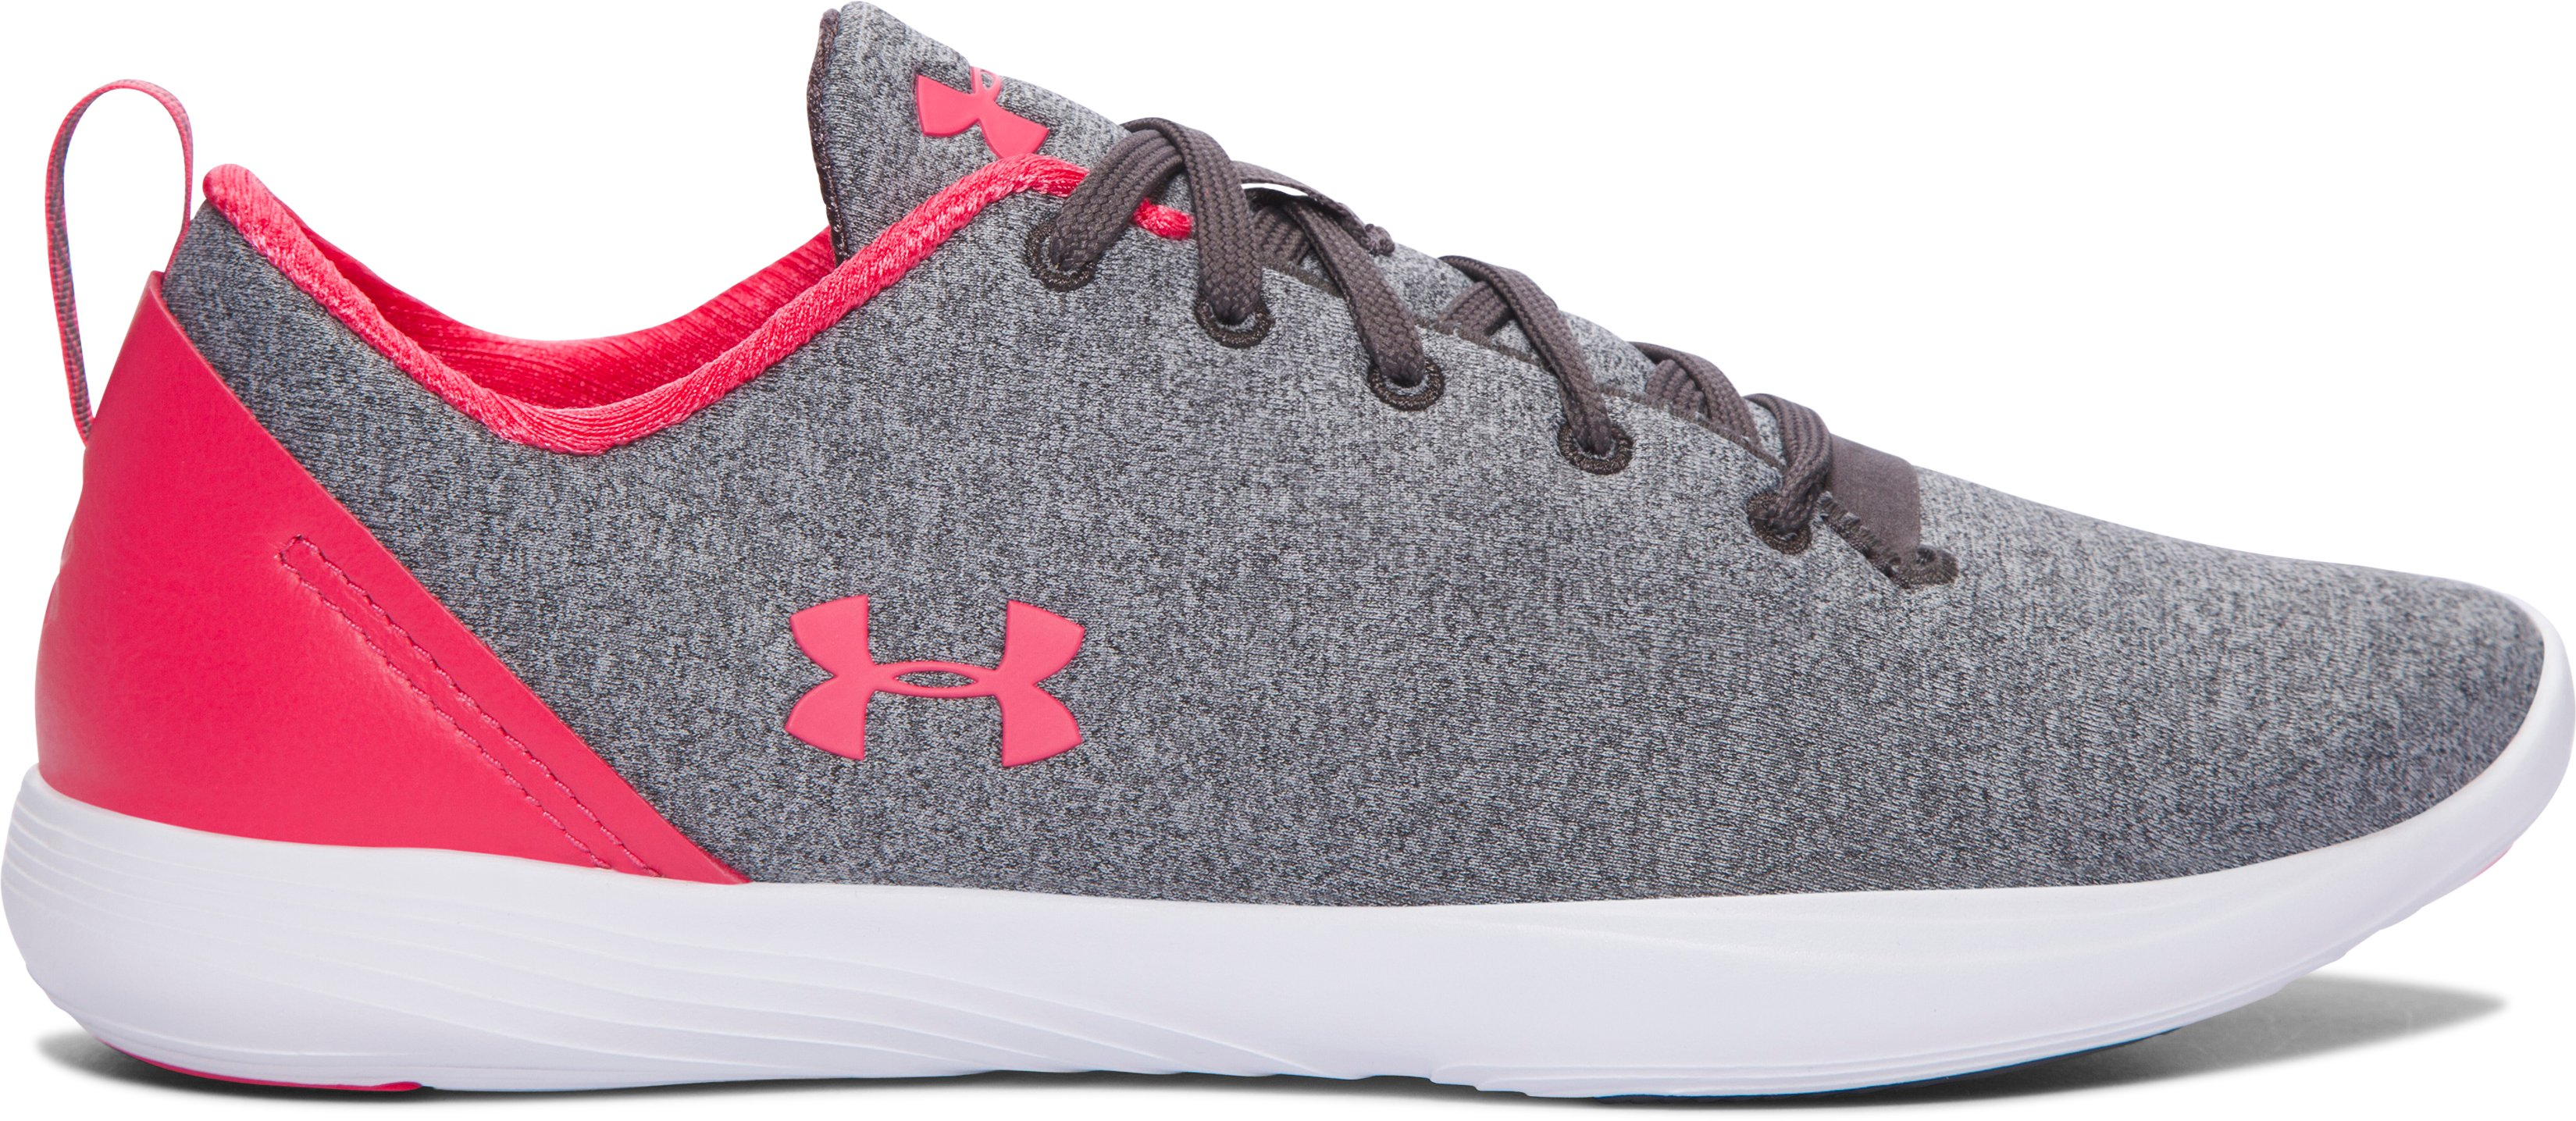 Women's UA Street Precision Sport Low Lifestyle Shoes, Charcoal